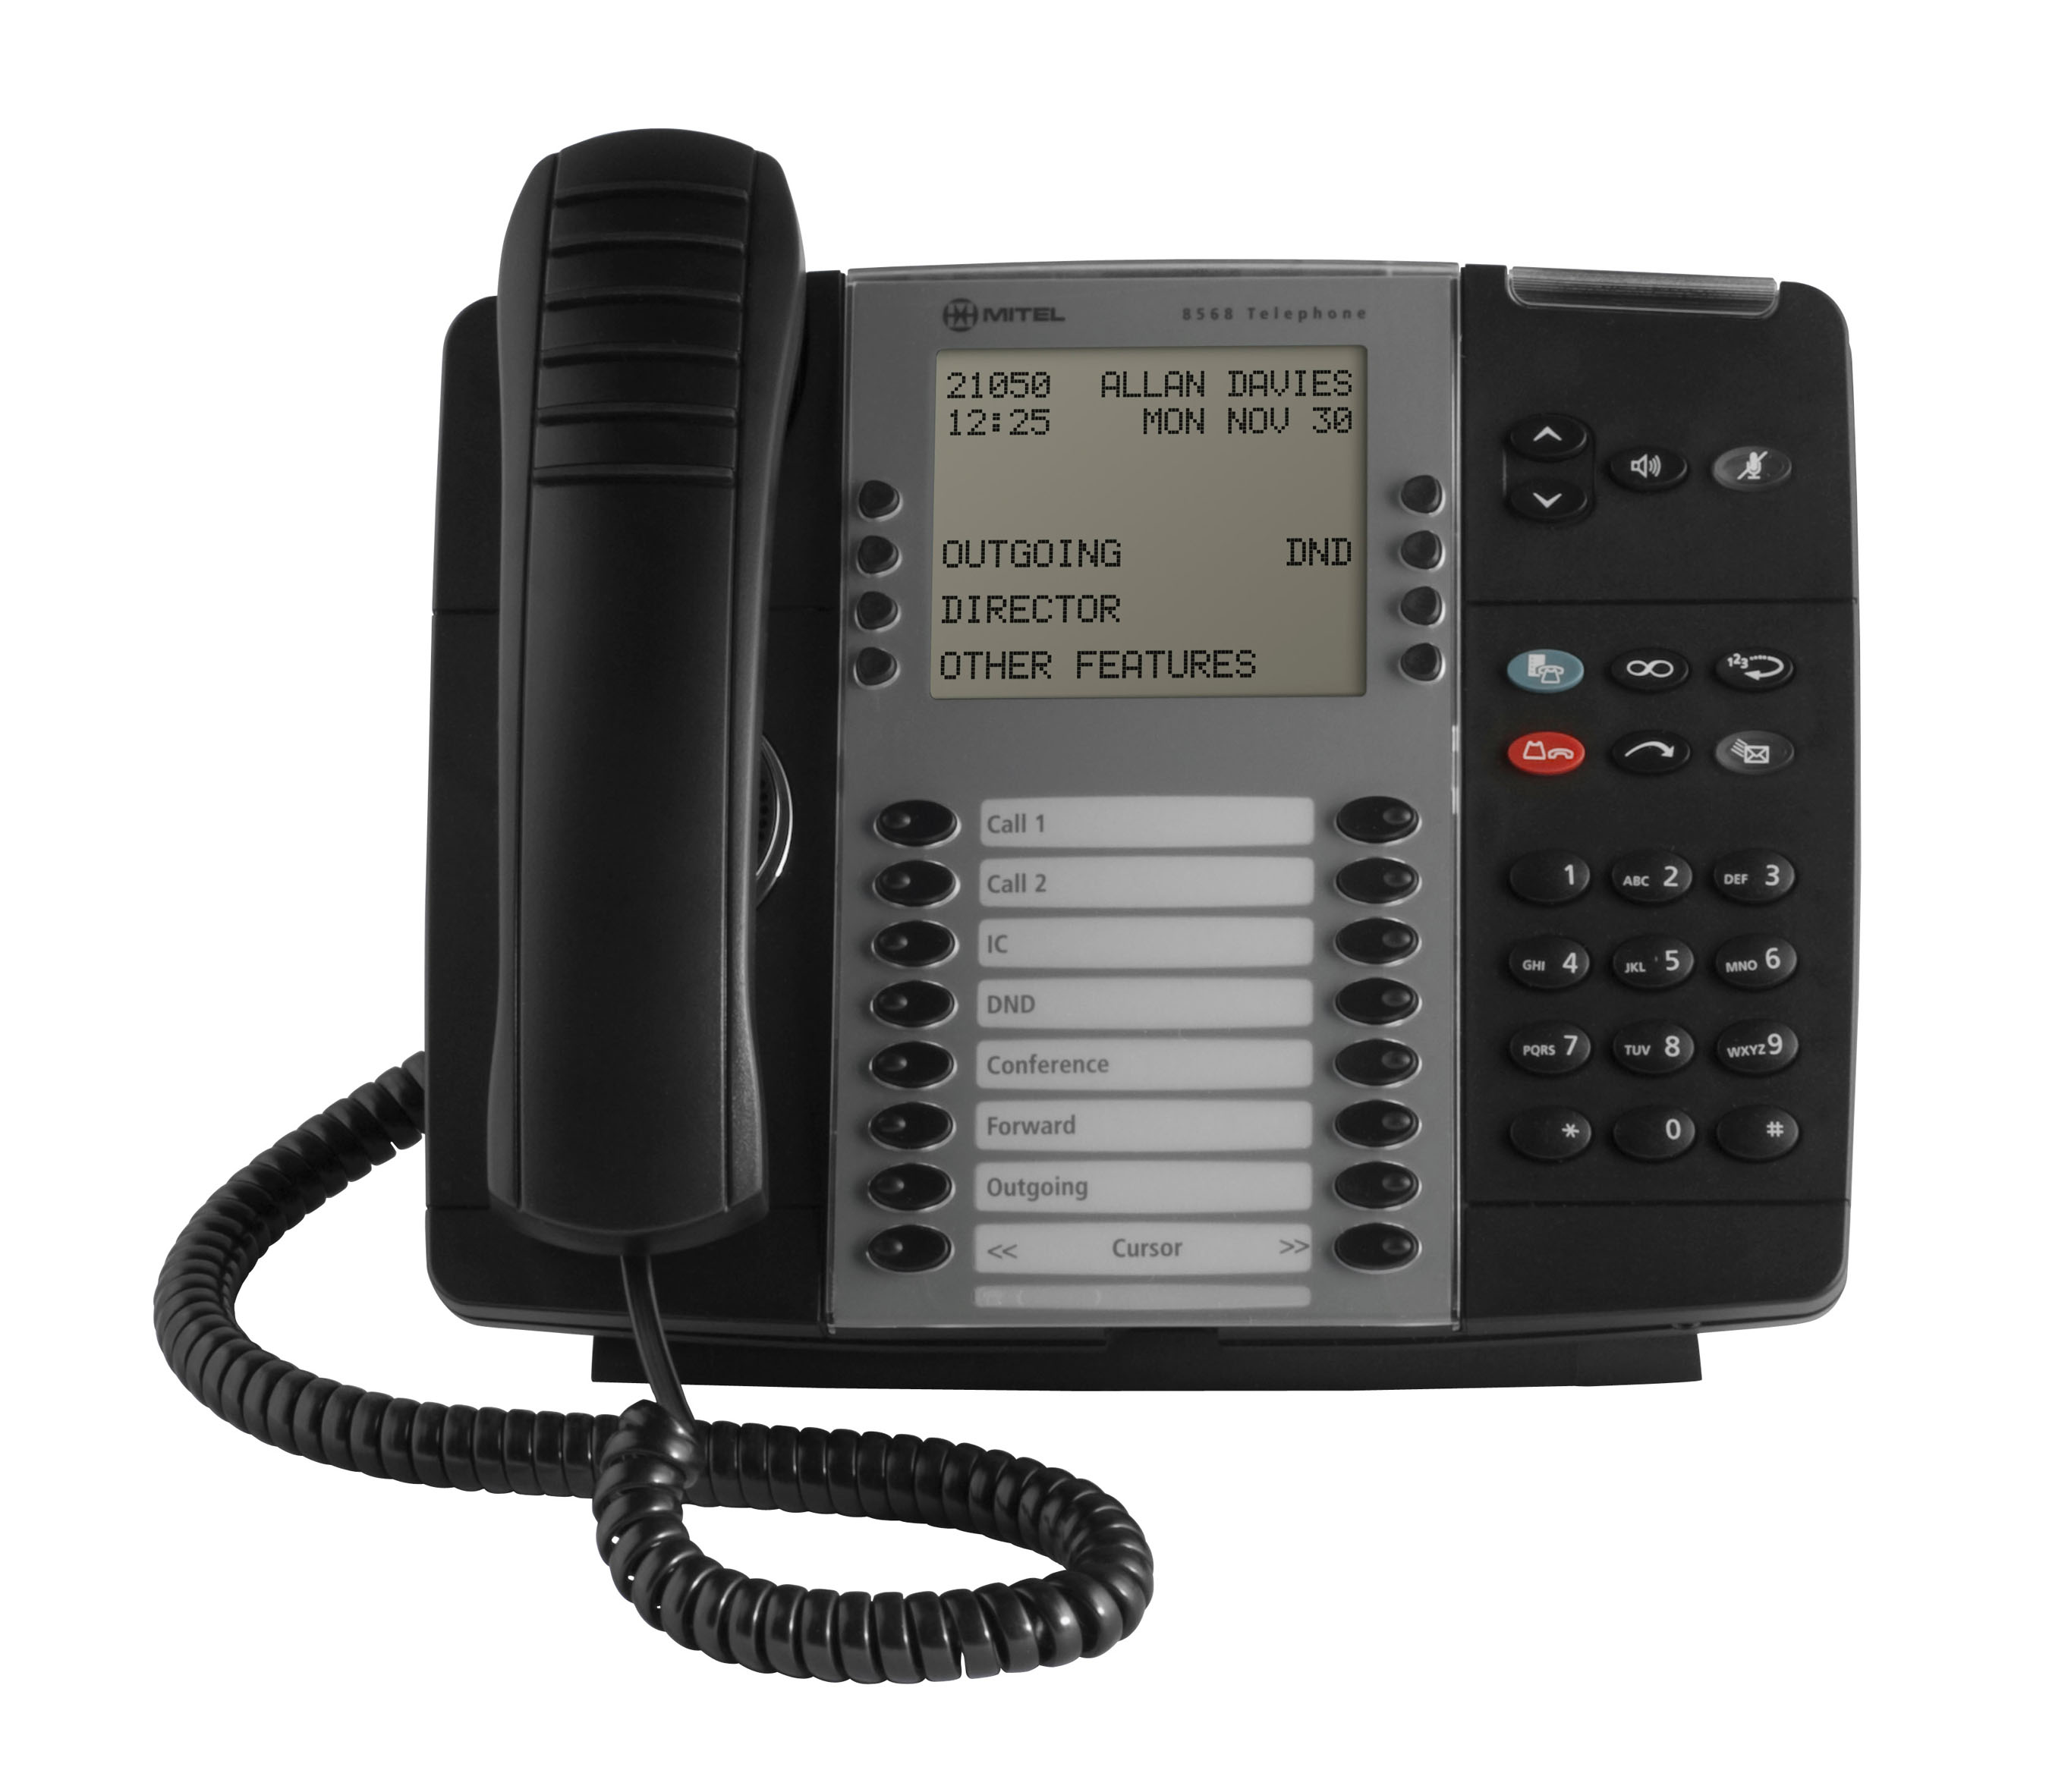 Mitel Model 8568 Digital Power User Telephone